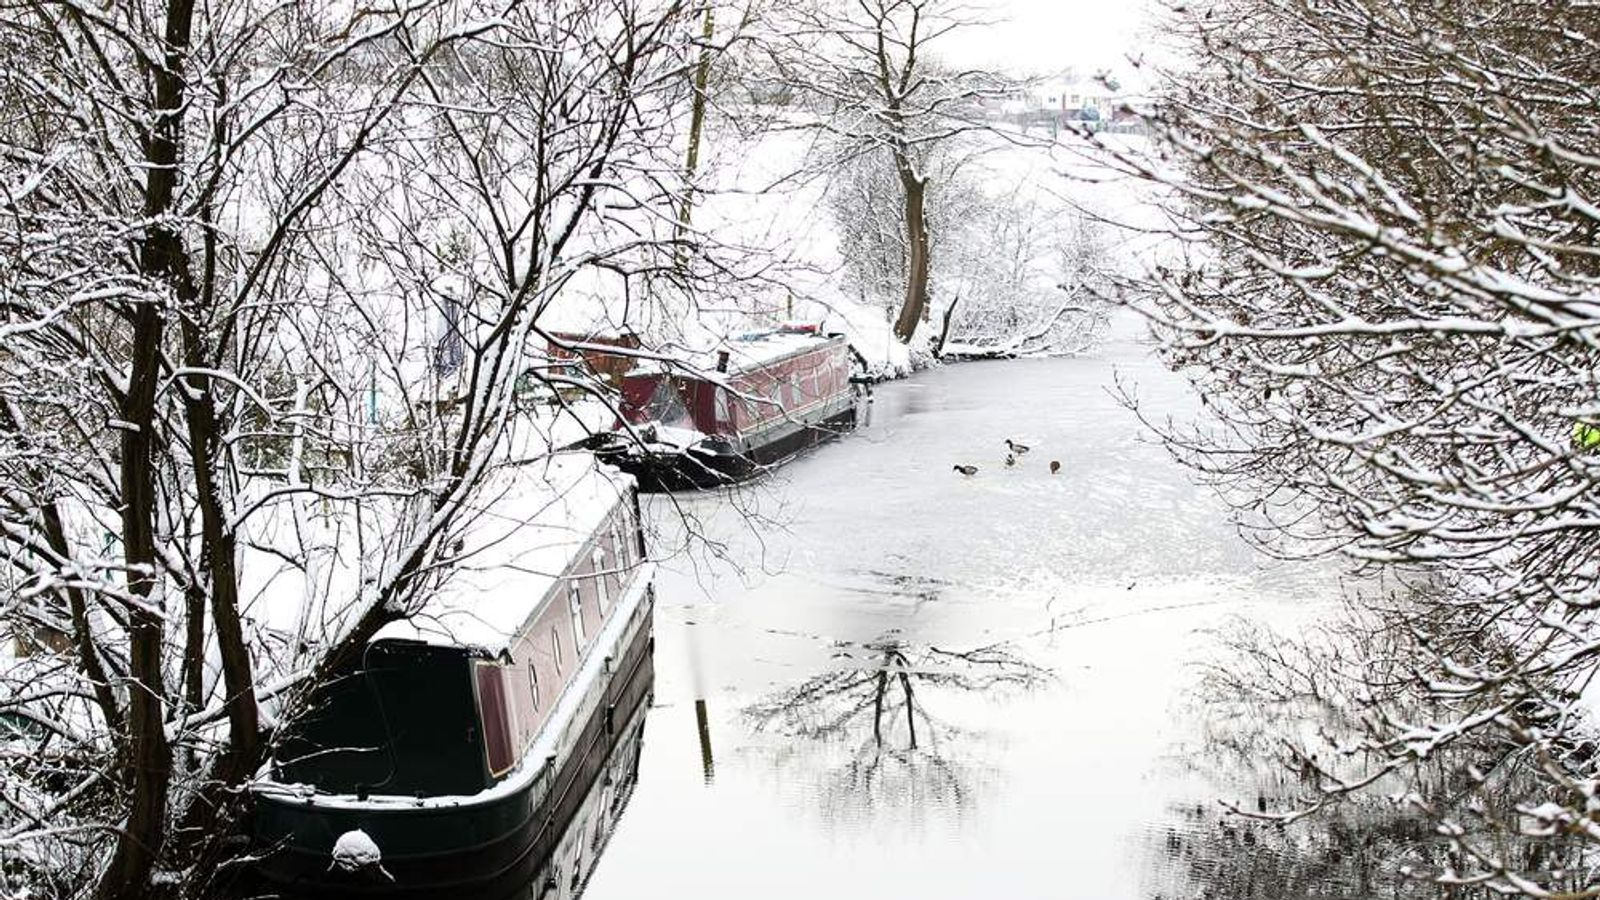 Winter weather - Boats on canal at Gurnet Aqueduck, Sutton, Cheshire